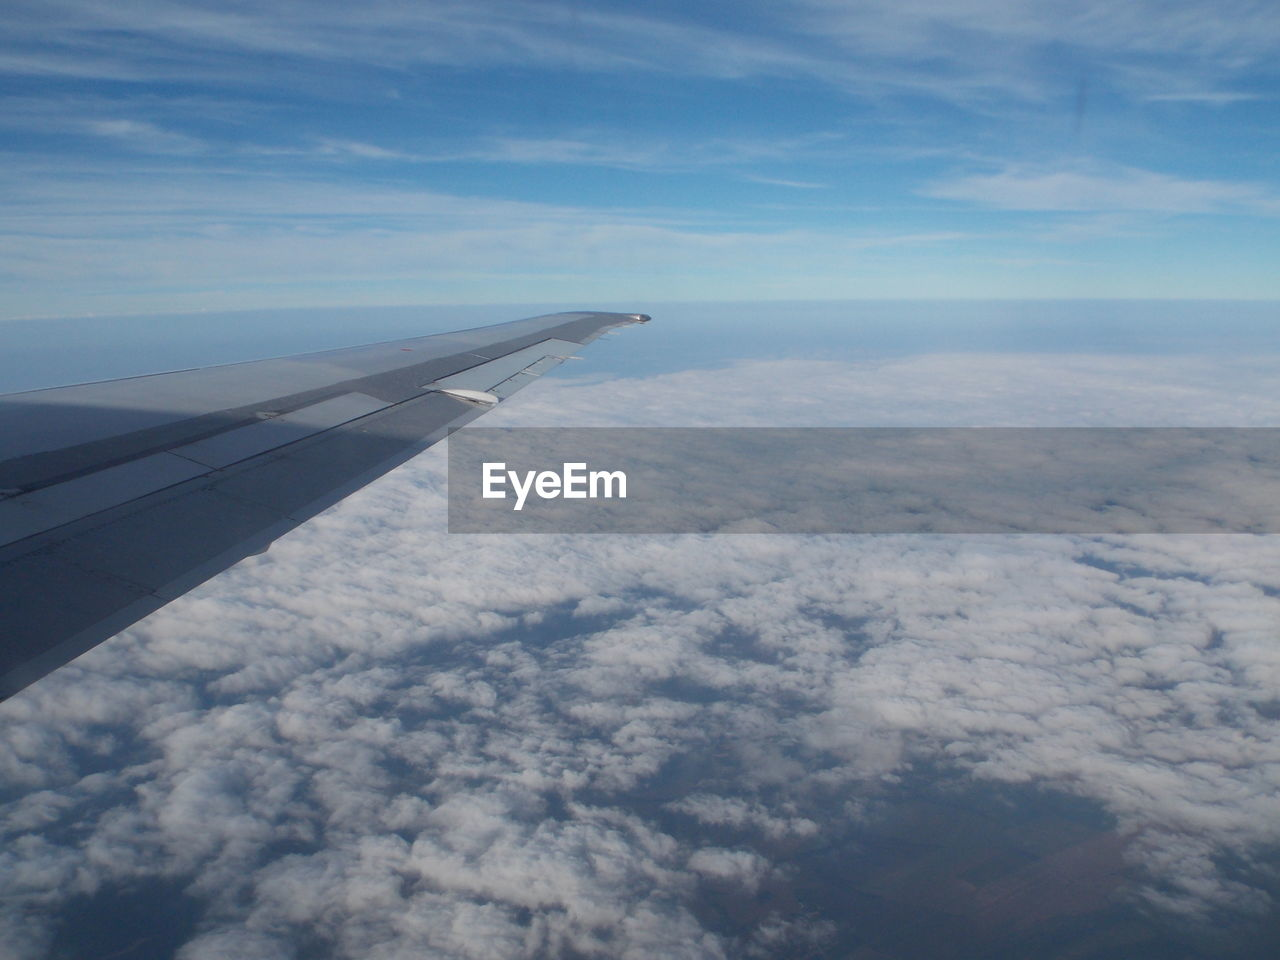 aerial view, cloud - sky, airplane, sky, transportation, nature, beauty in nature, scenics, journey, travel, airplane wing, no people, blue, tranquility, day, outdoors, tranquil scene, mid-air, flying, air vehicle, landscape, the natural world